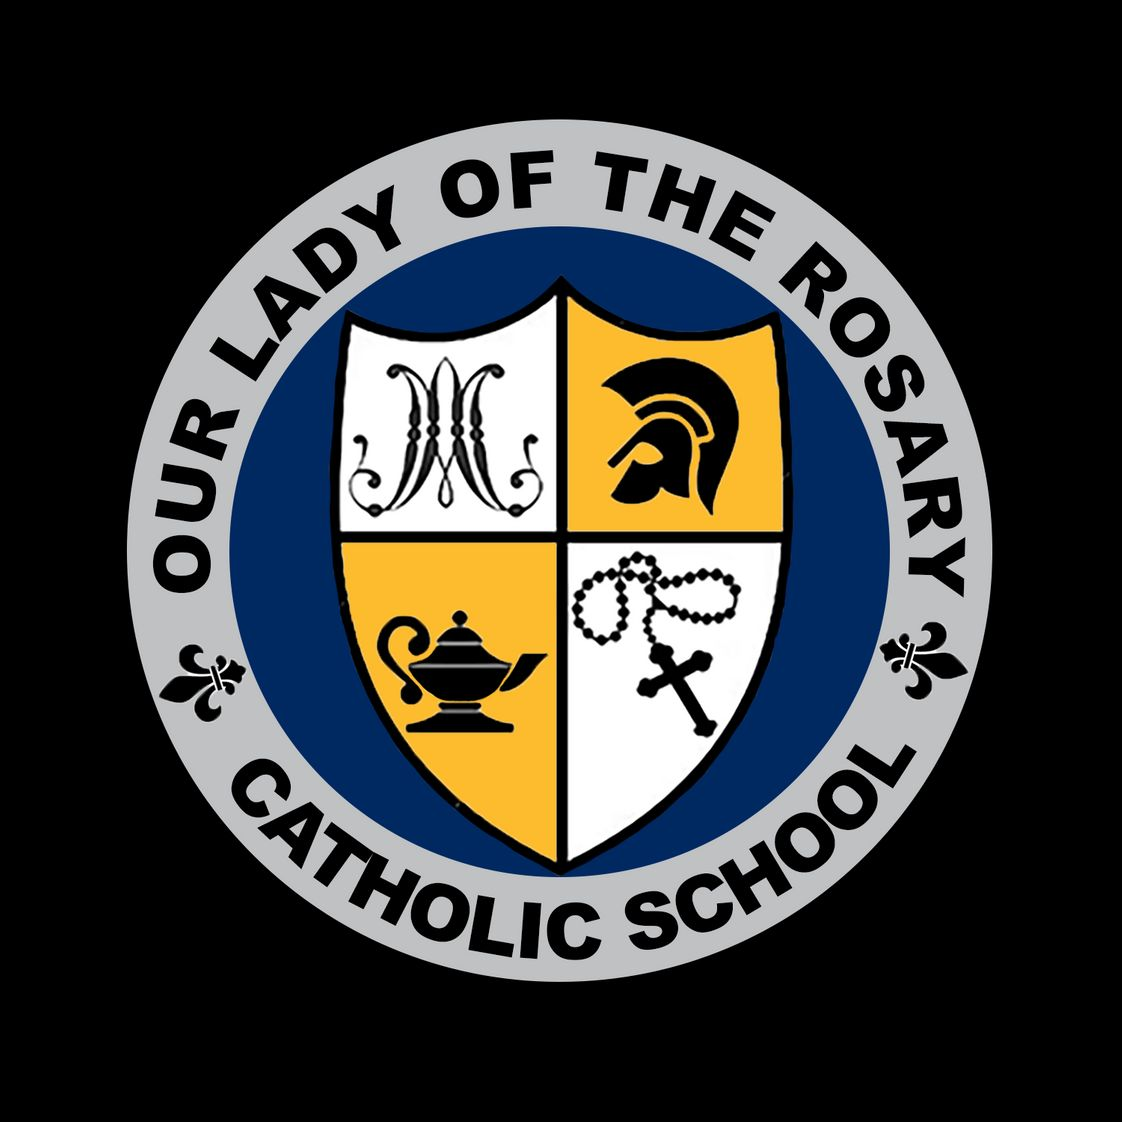 Our Lady of the Rosary School, Paramount Photo